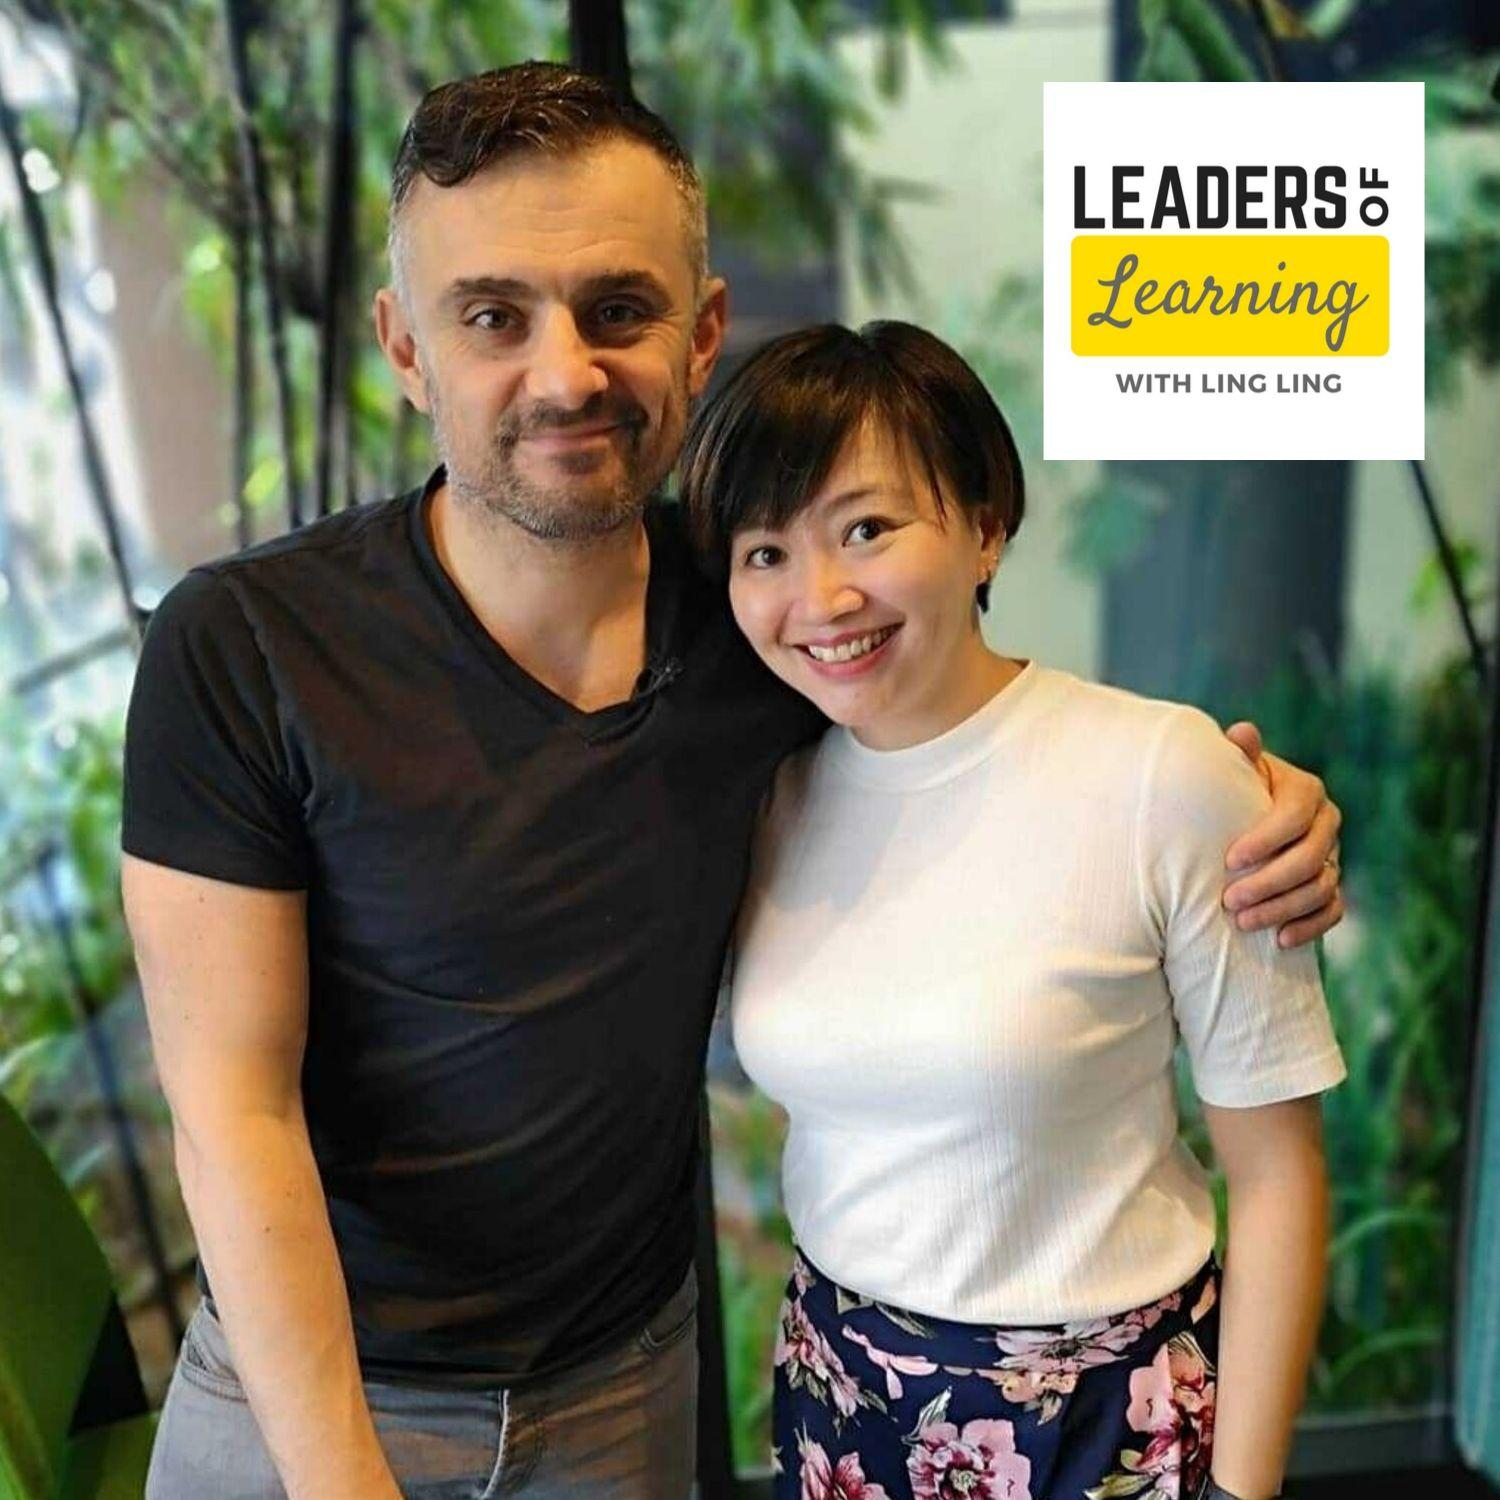 Becoming an Entrepreneur with Gary Vaynerchuk